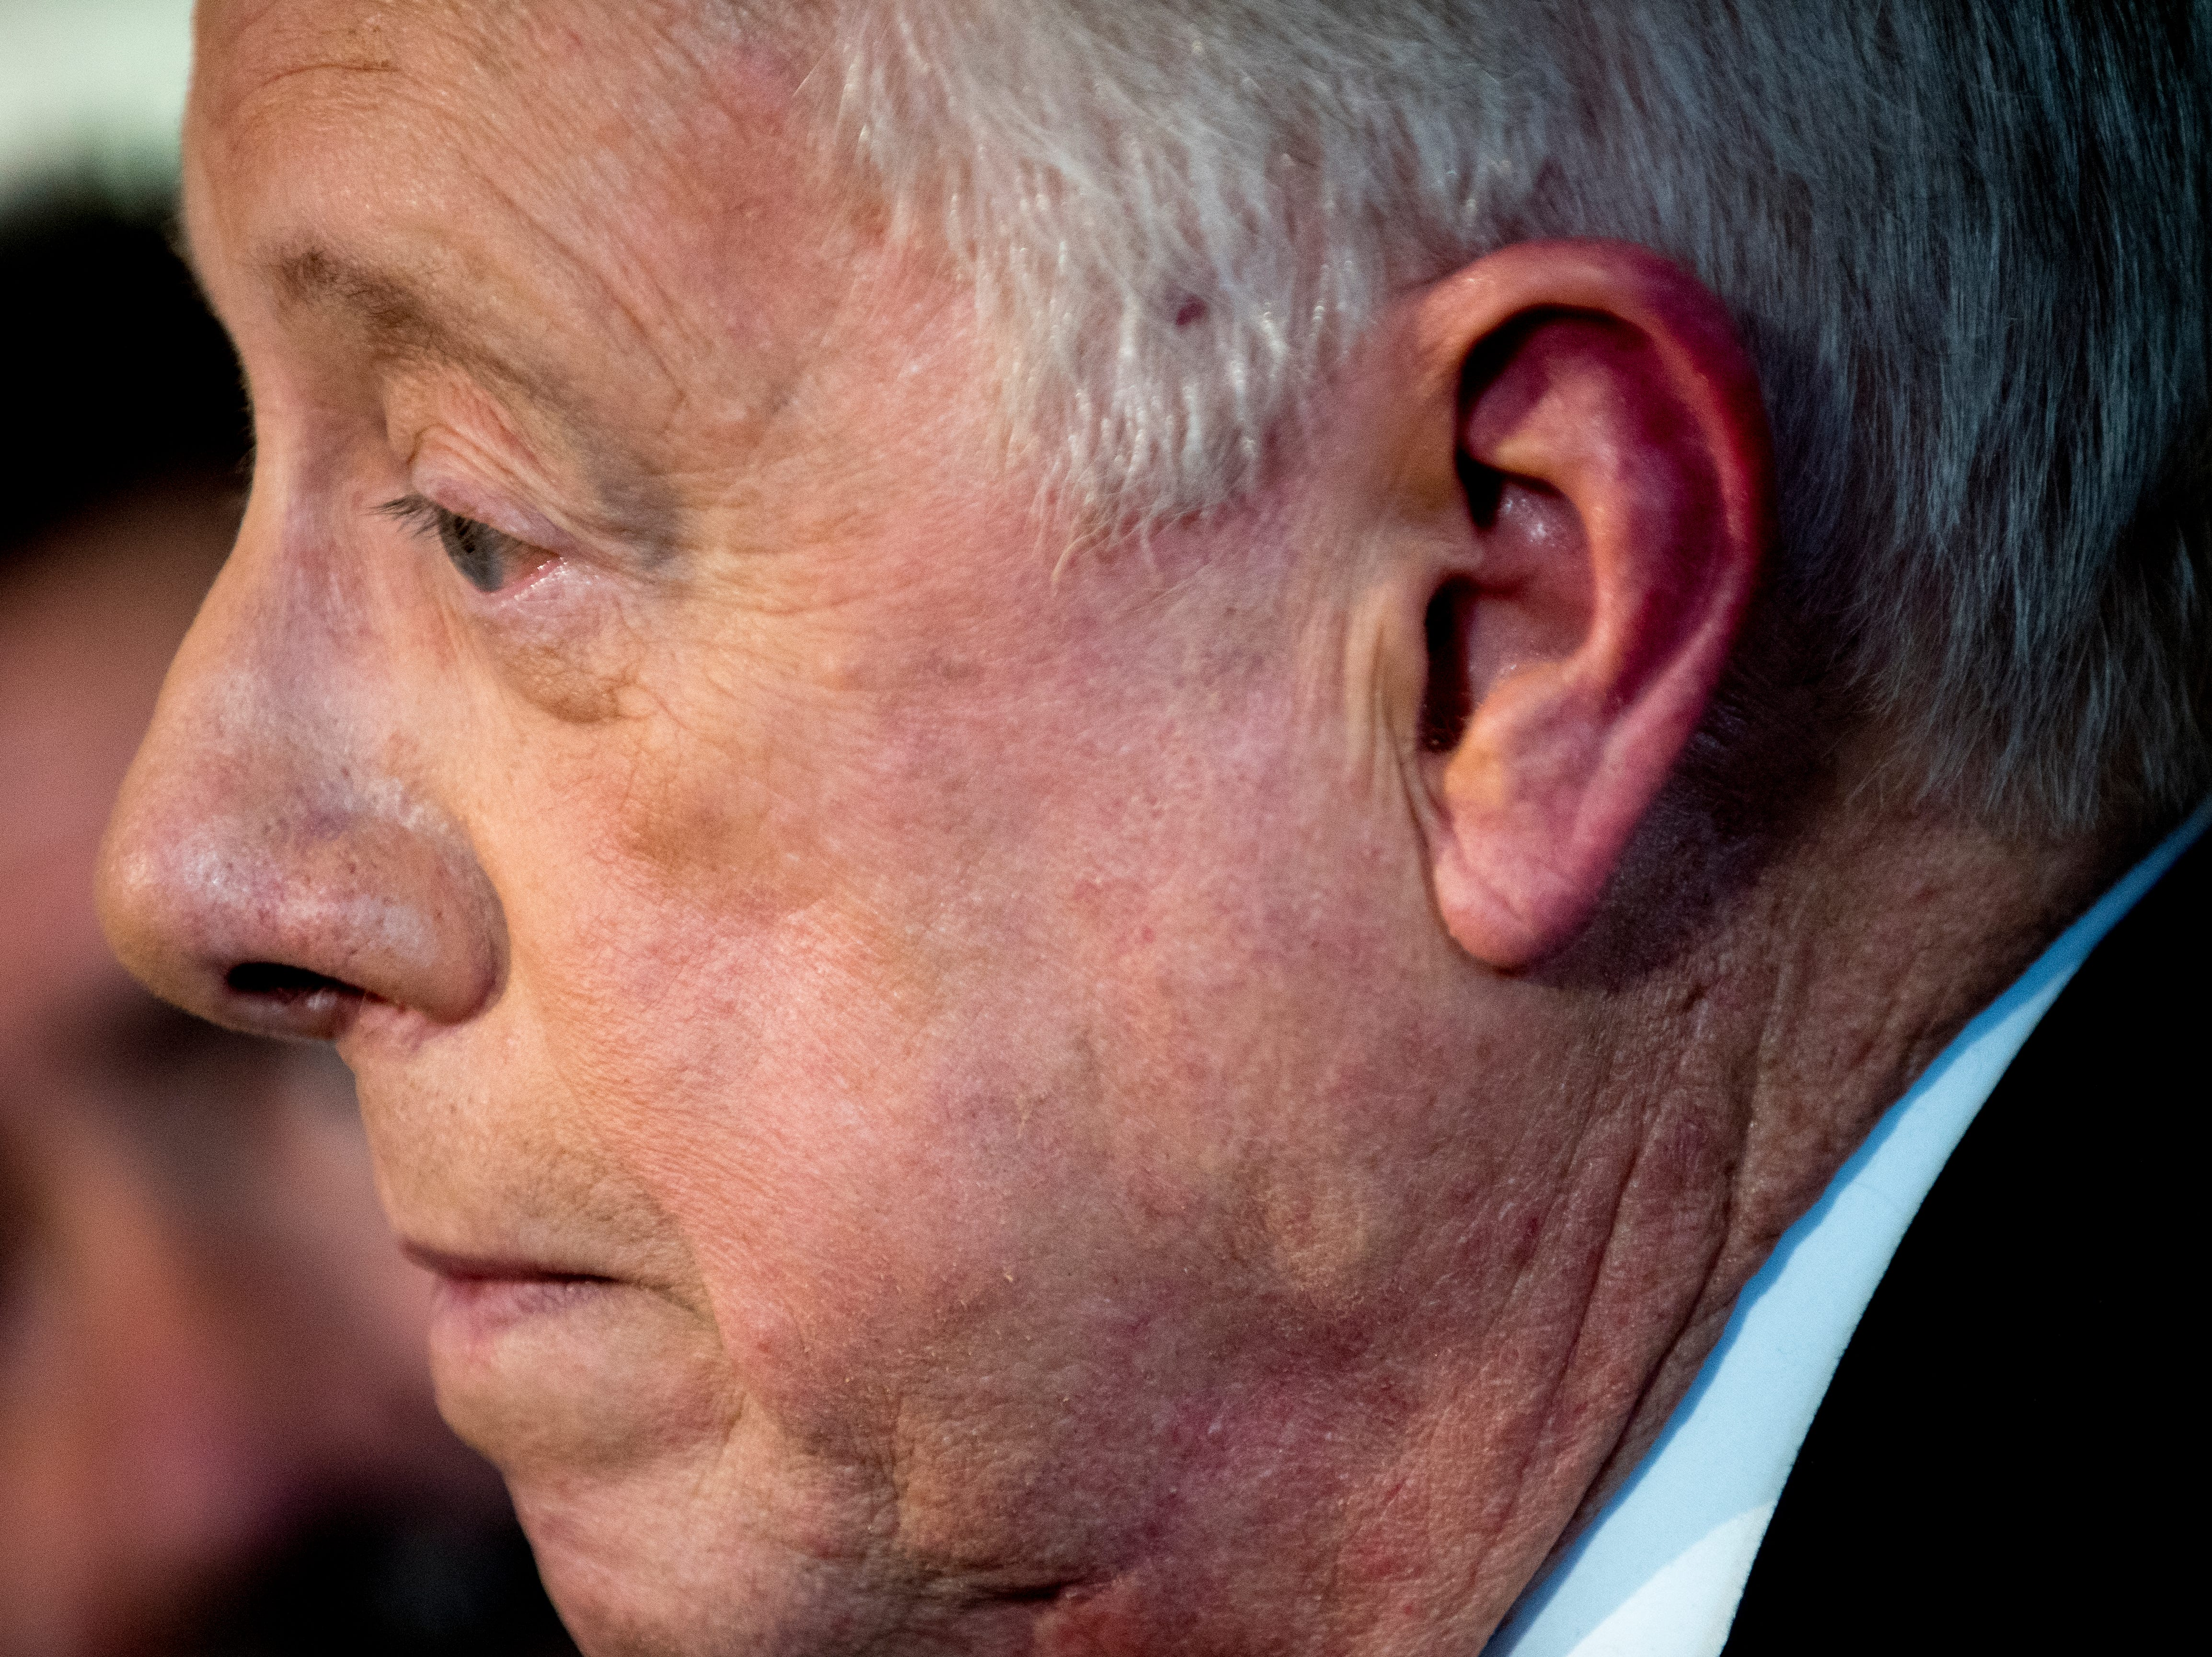 """Former Governor Phil Bredesen speaks with the media during an """"Doing Better Together"""" Interfaith Lunch at the Bessie Smith Cultural Center in Chattanooga, Tennessee on Sunday, November 4, 2018. Former Governor Phil Bredesen, candidate for U.S. Senate, hosted the event to discuss the future of Tennessee and America."""